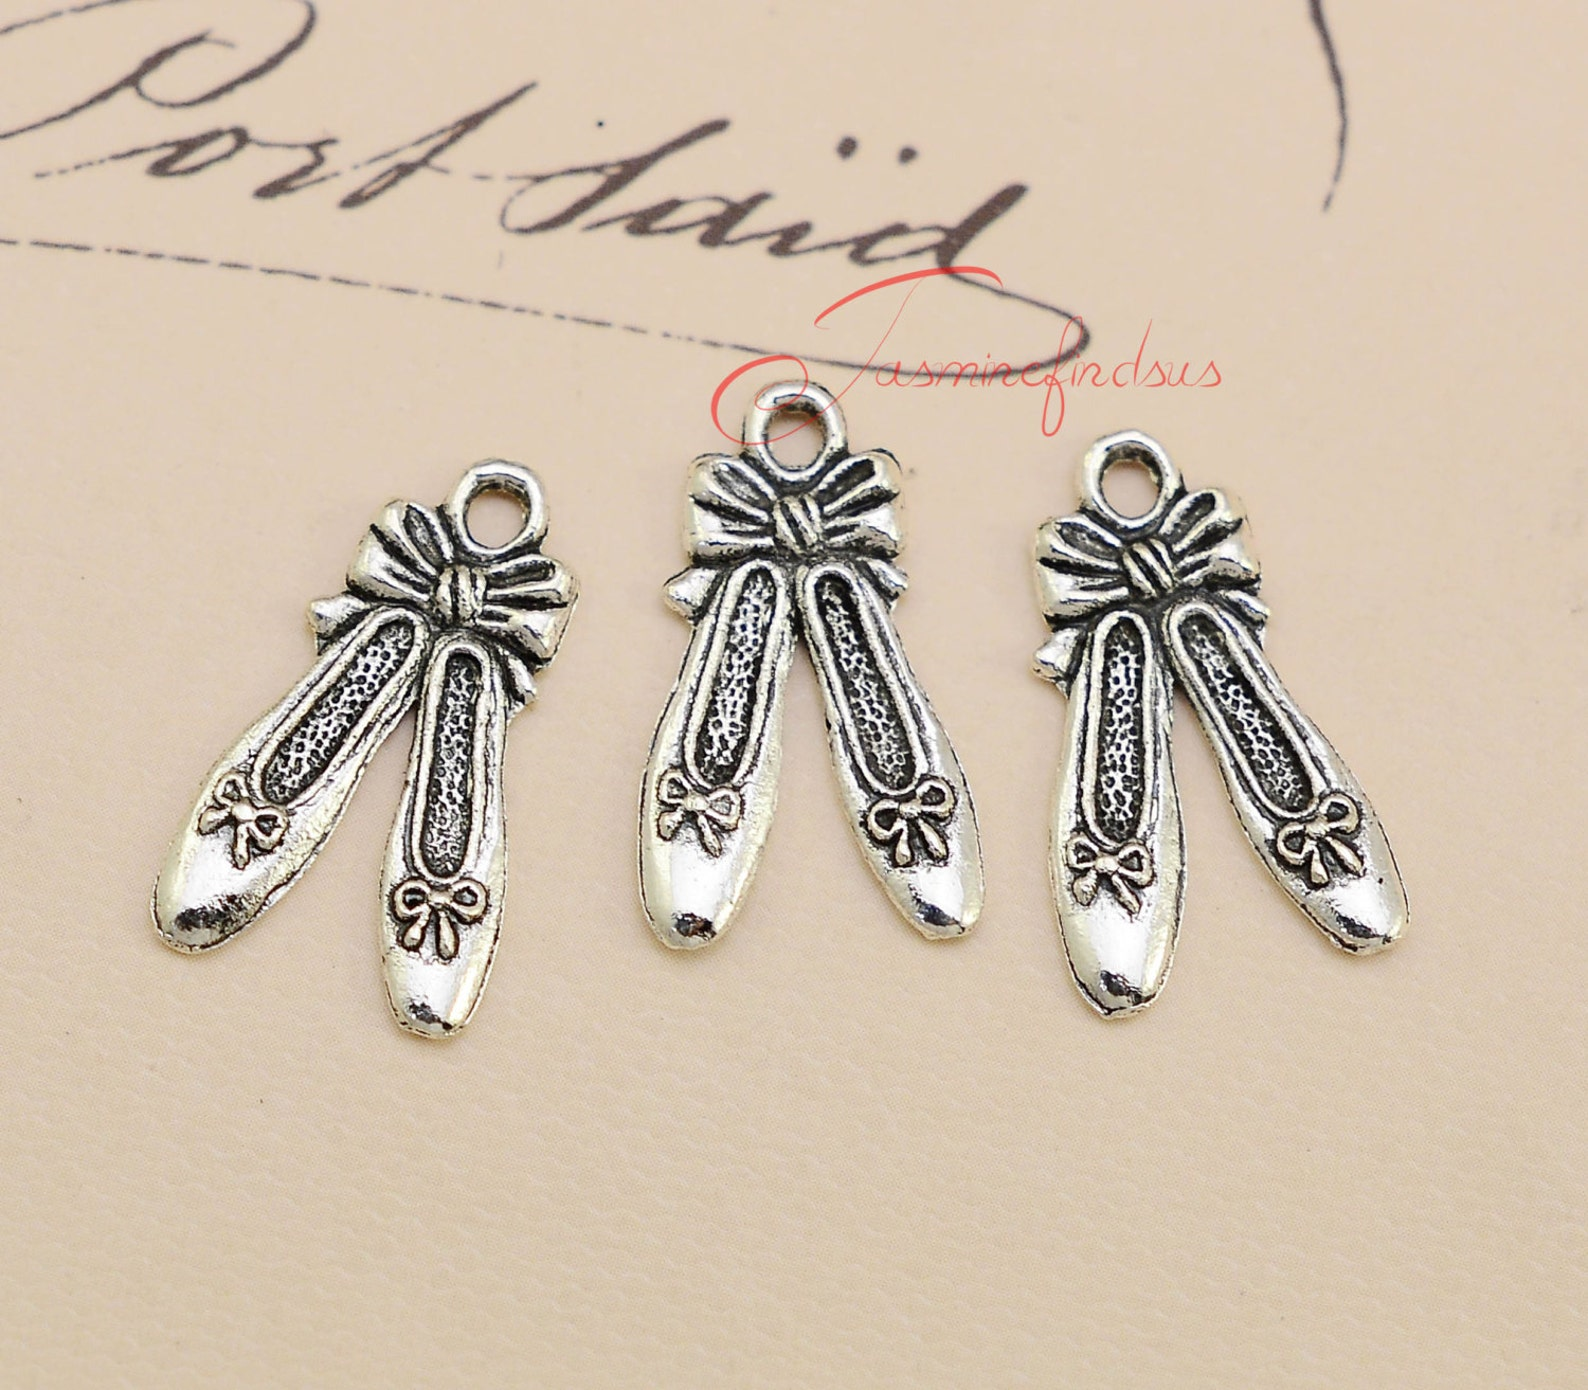 25pcs--21x13mm ,ballet slipper charms, antique tibetan silver ballet slipper charm pendants, jewelry making findings